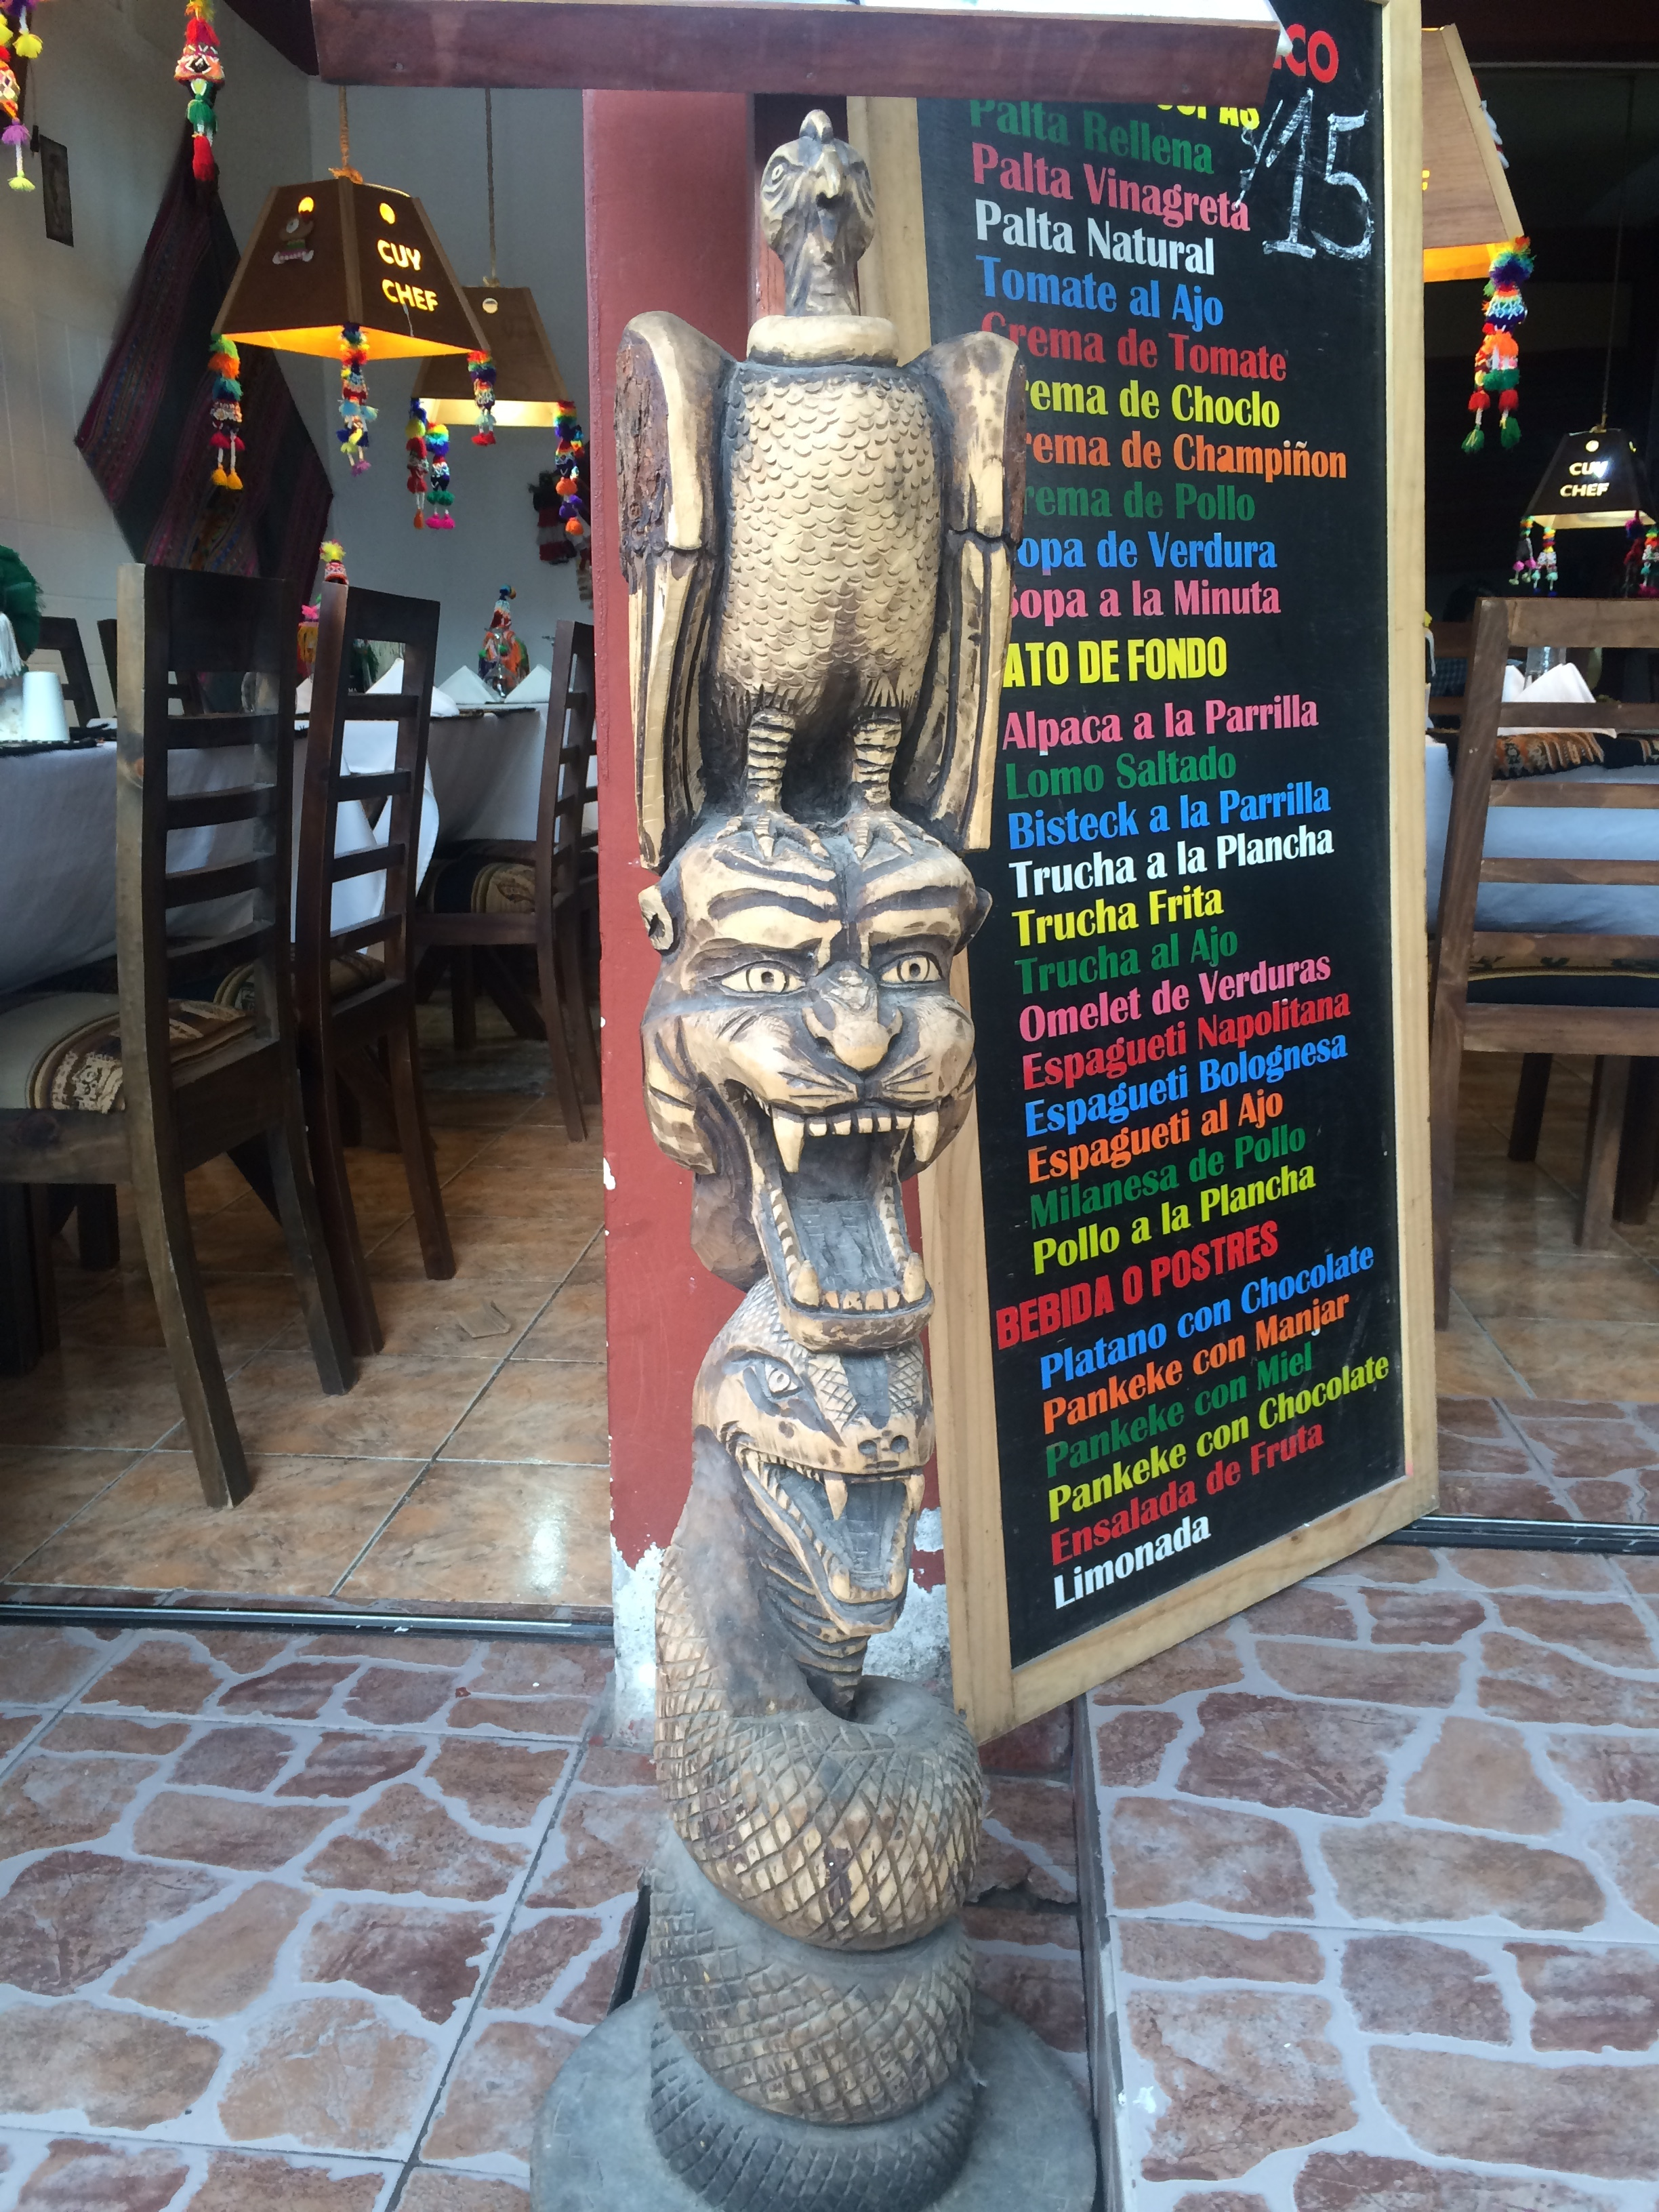 A typical tourist menu behind the ever present Incan statue representing the three levels of life. The snake (our movement through life), puma (strength), and the condor (flight and freedom).